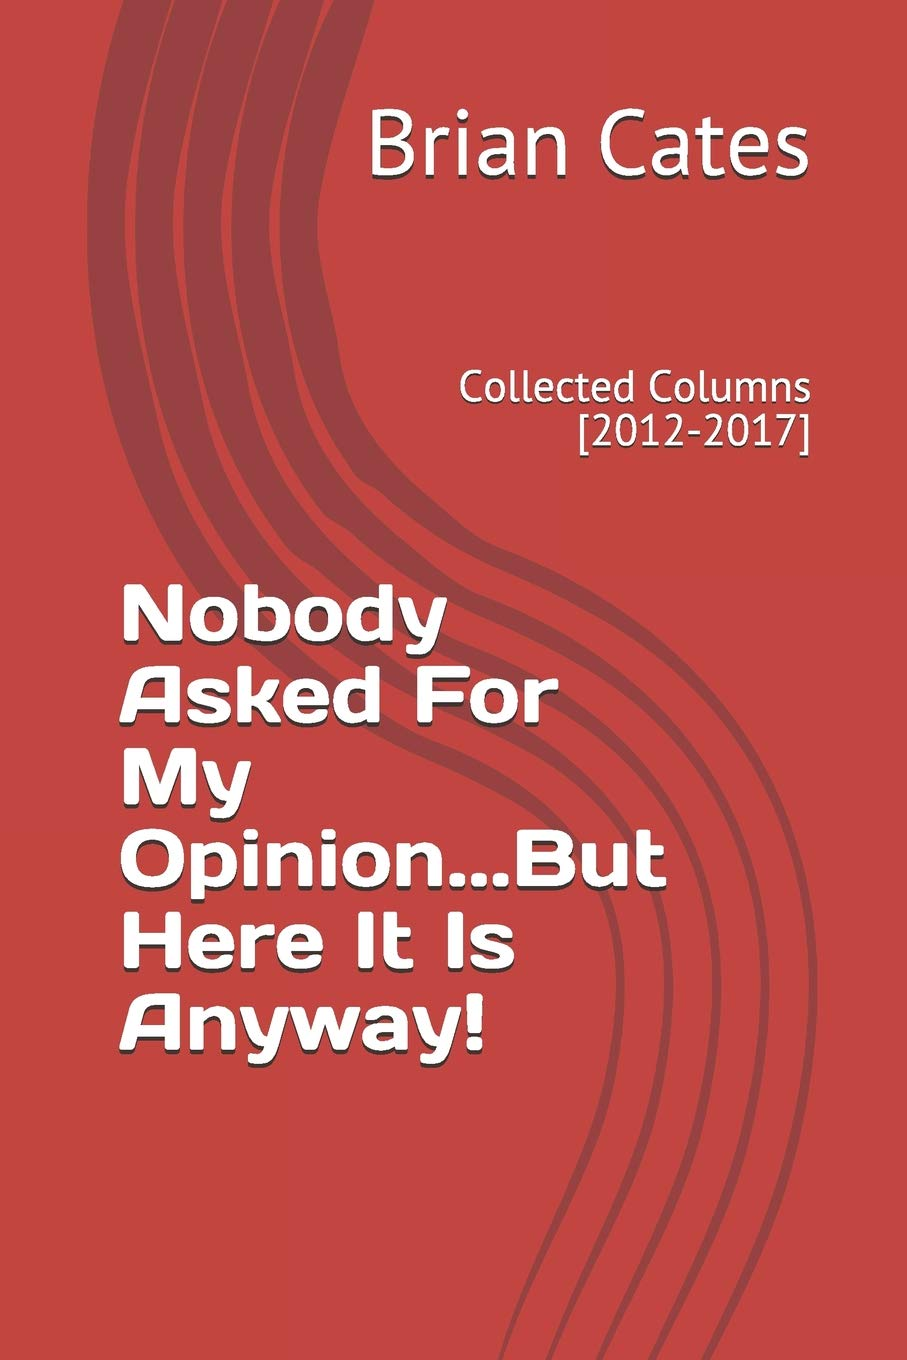 Nobody Asked For My Opinion But Here It Is Anyway Collected Columns 2012 2017 Cates Brian 9781720272212 Amazon Com Books According to brian cates there is much more. nobody asked for my opinion but here